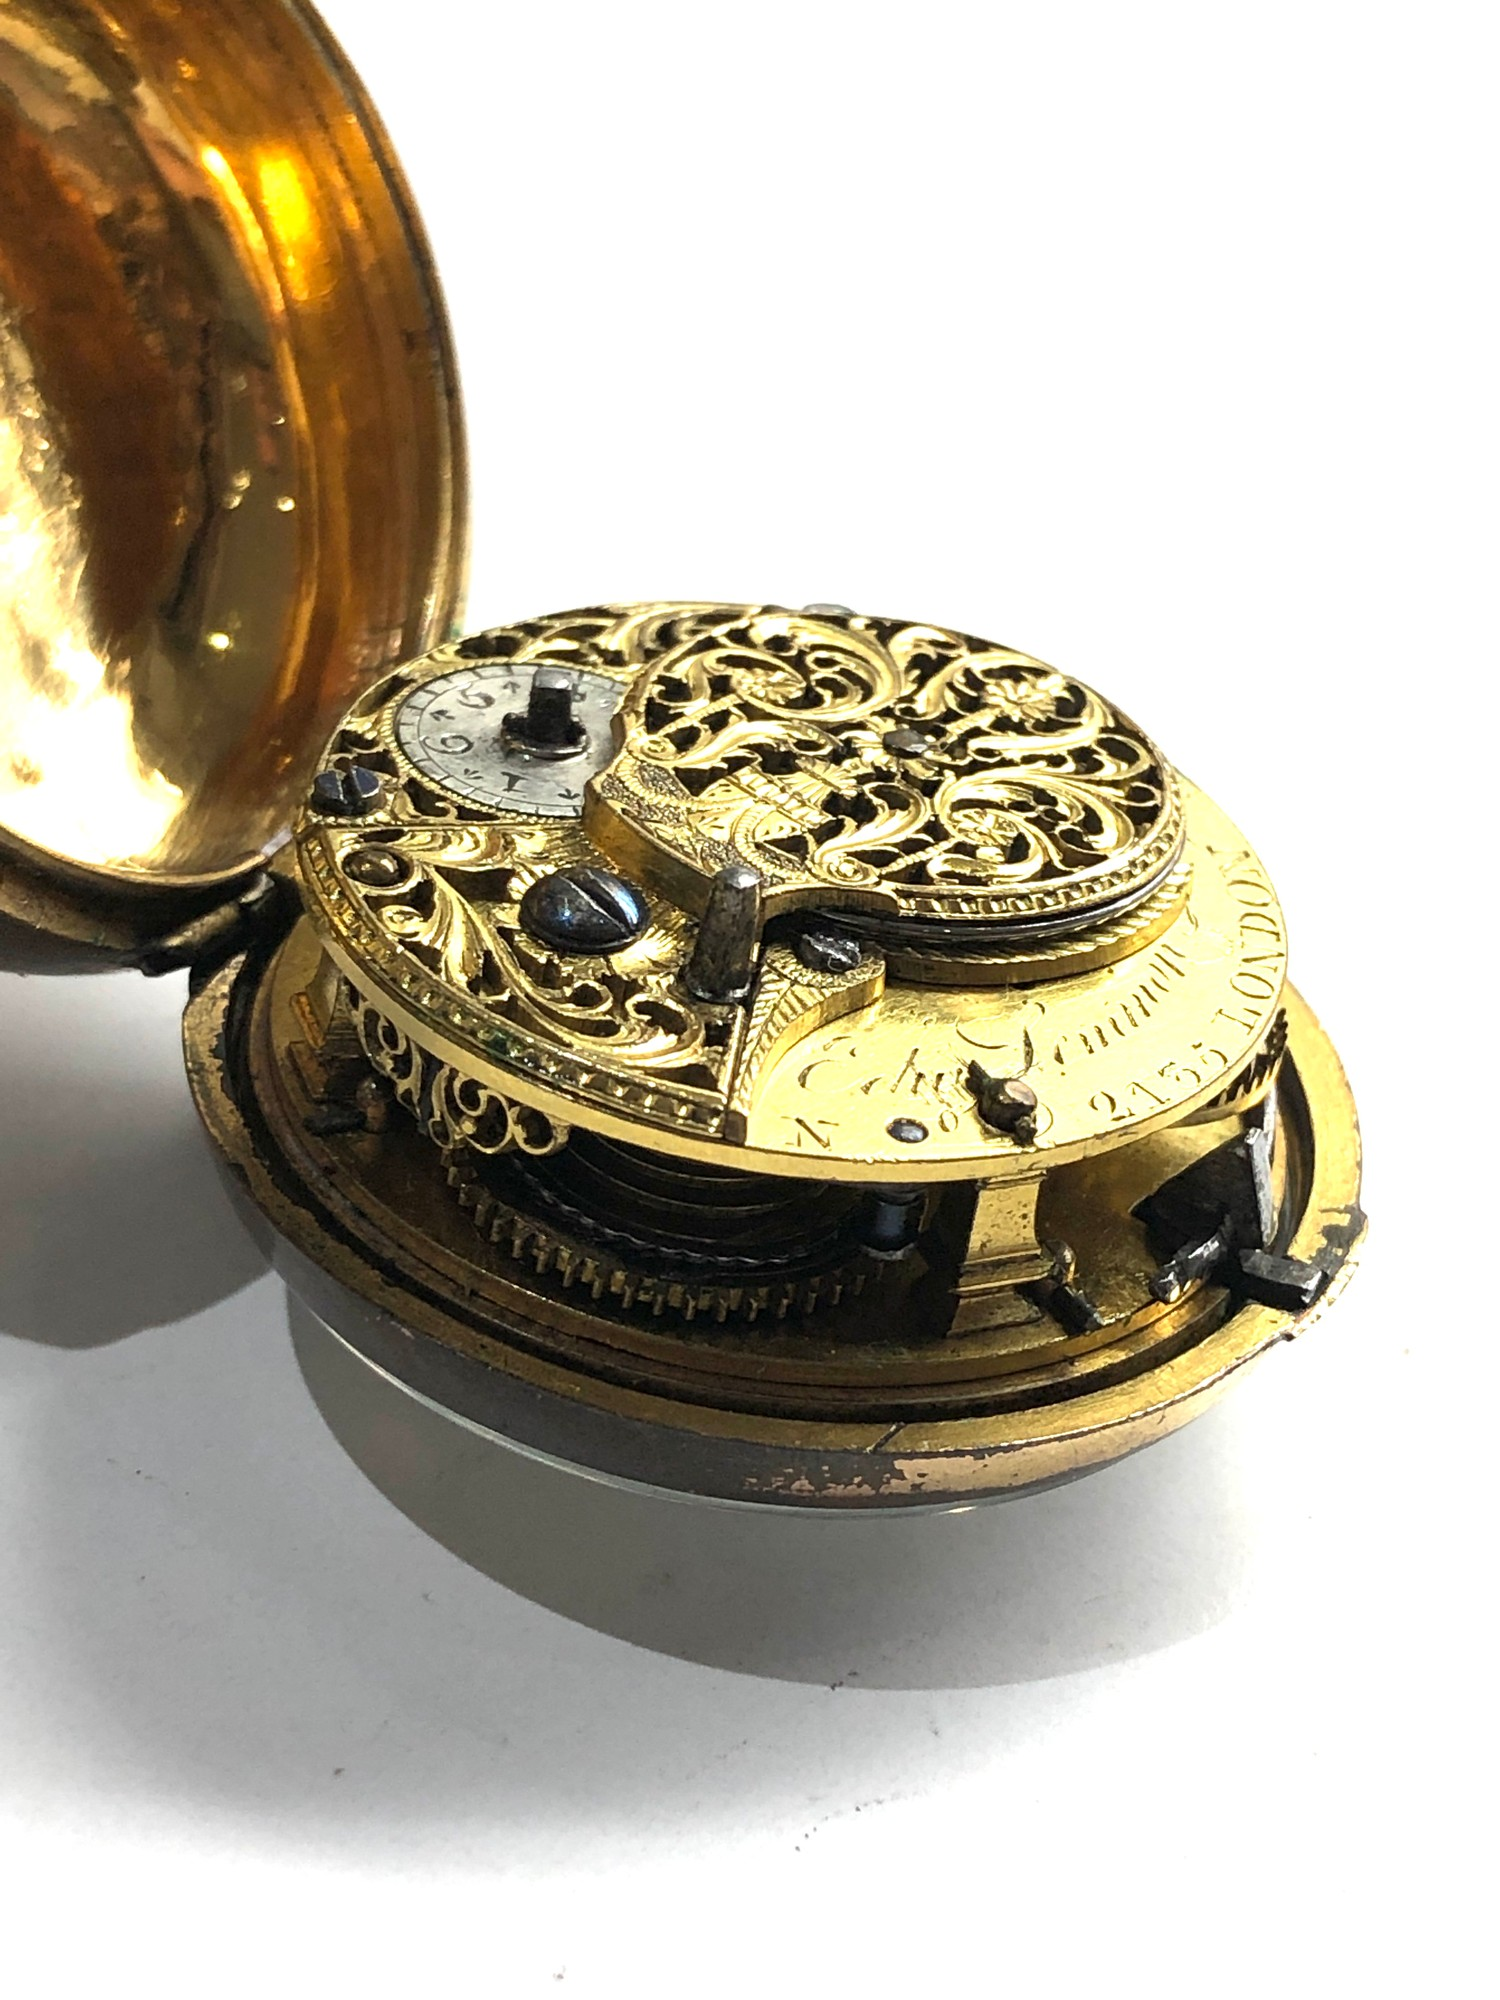 18th century London paircase verge pocket watch the watch does wind and tick dial damaged outer case - Image 3 of 9